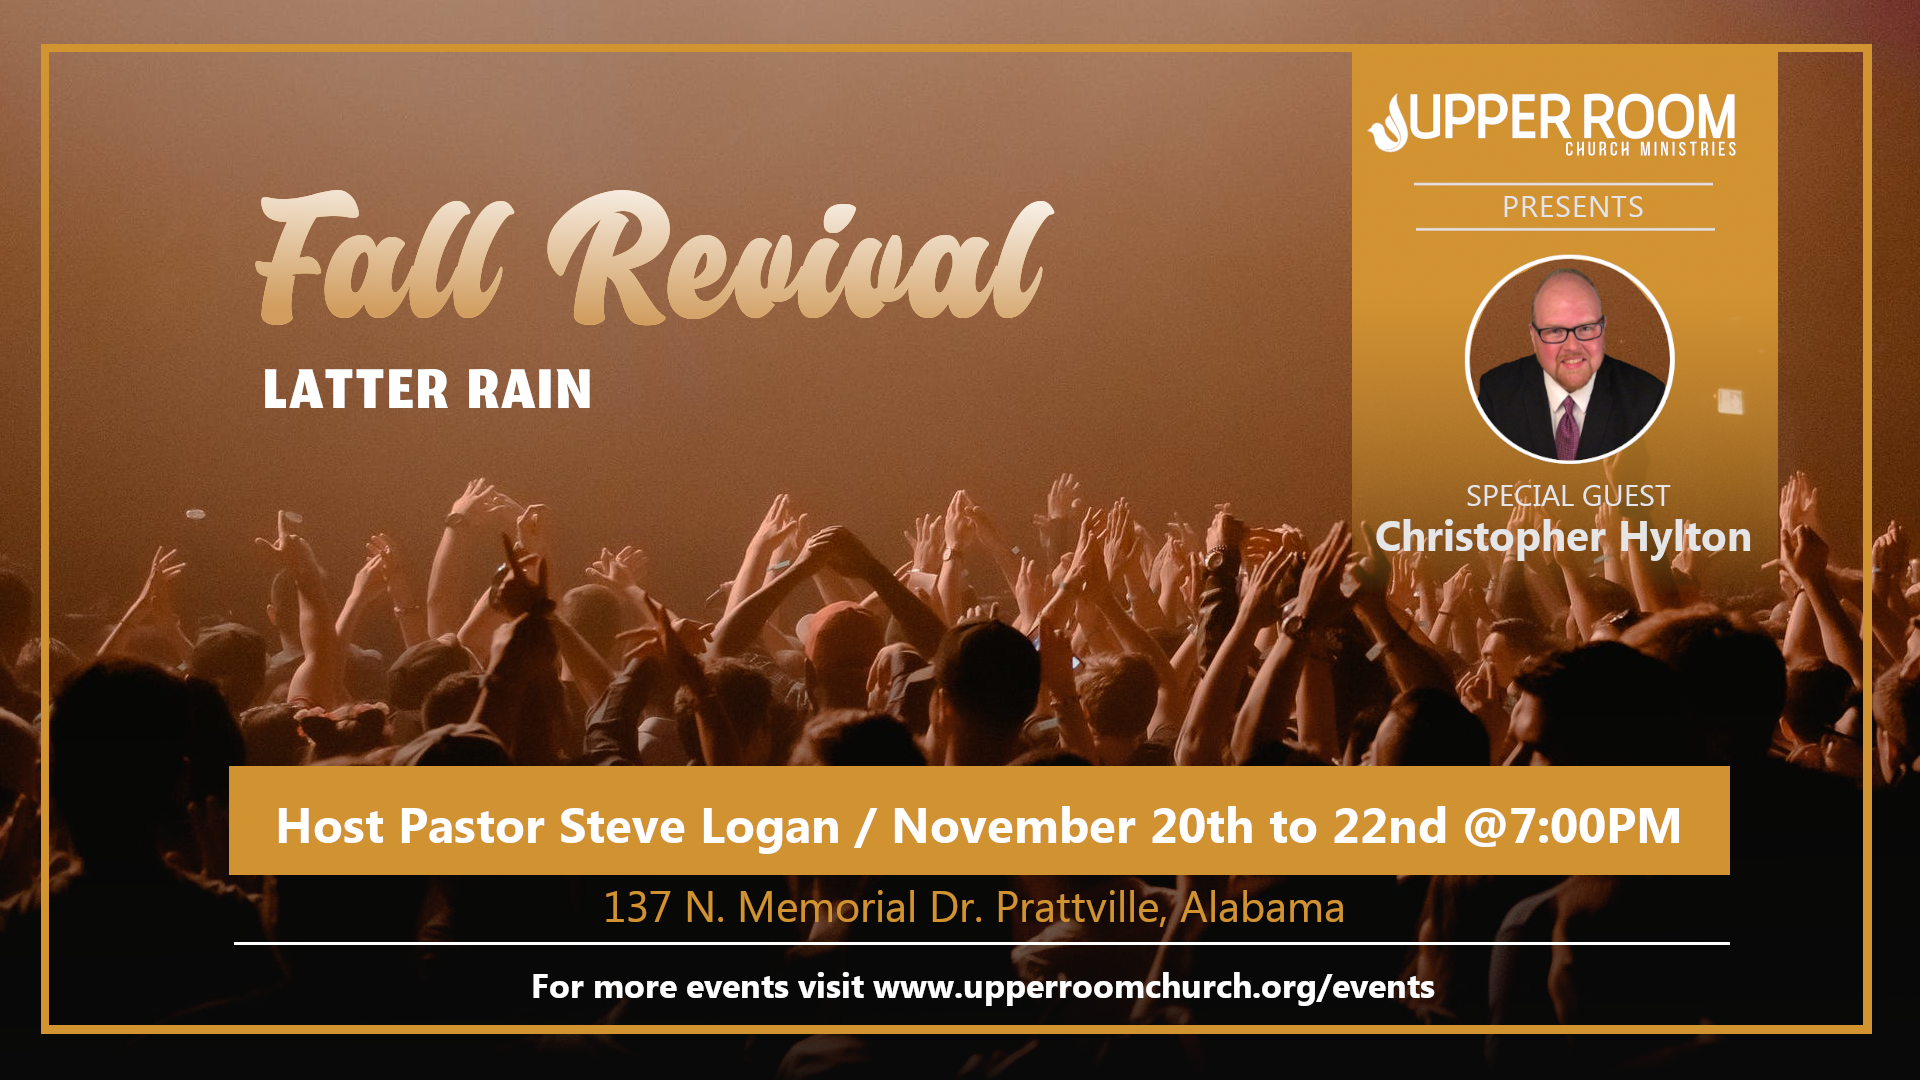 Fall Revival - Latter Rain Flyer